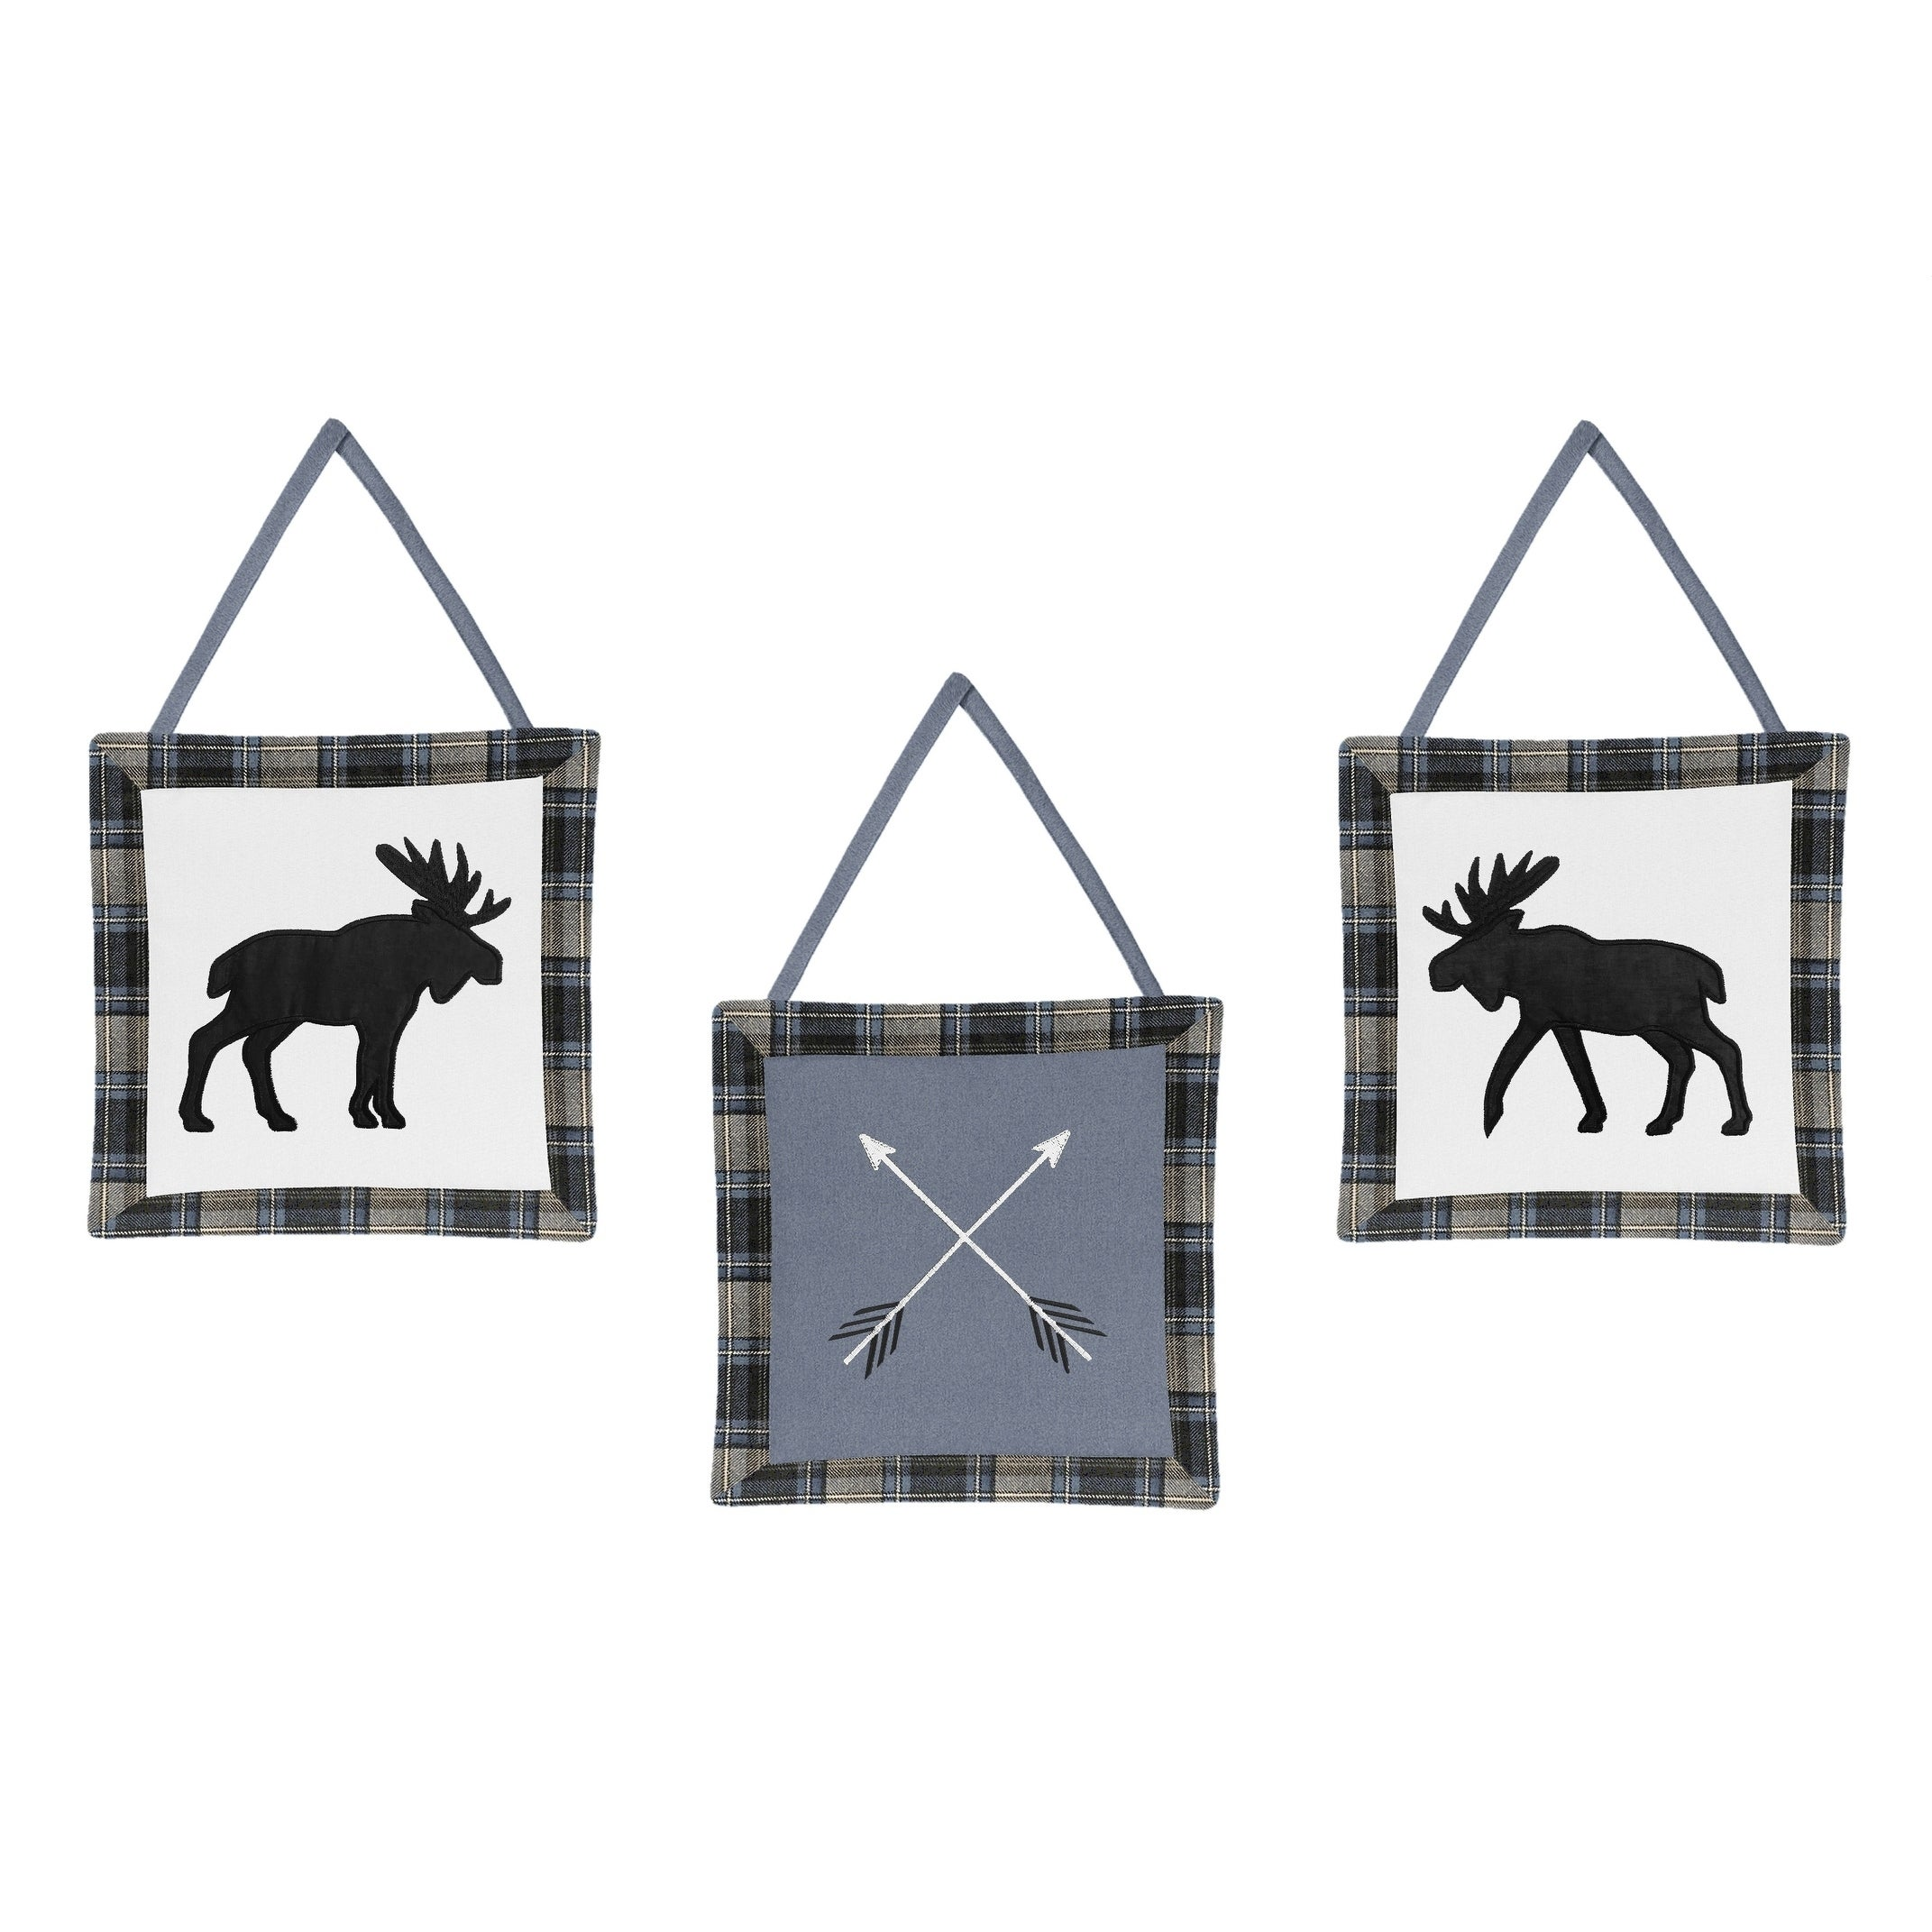 Sweet Jojo Designs Blue Tan Black Woodland Plaid And Arrow Rustic Patch Collection Wall Hangings Set Of 3 Overstock 27278914